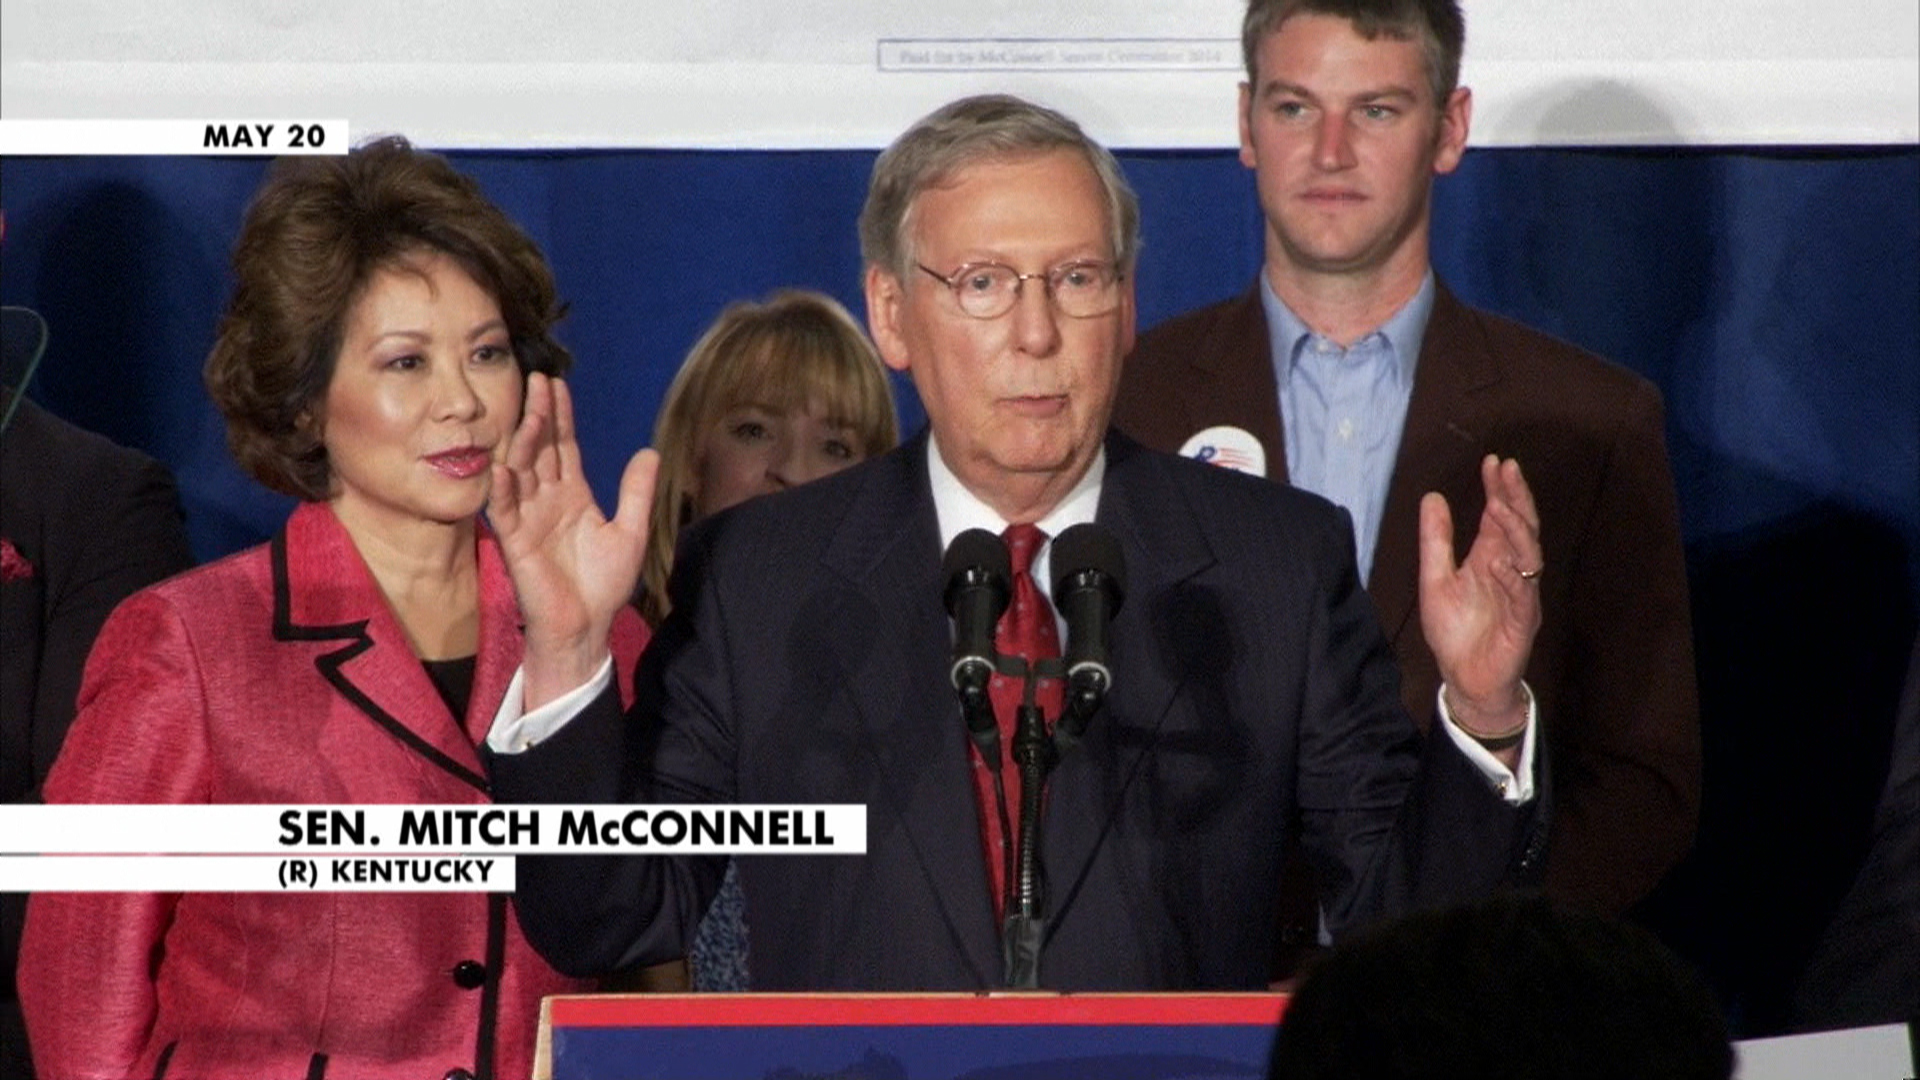 Mitch McConnell's Obamacare problem